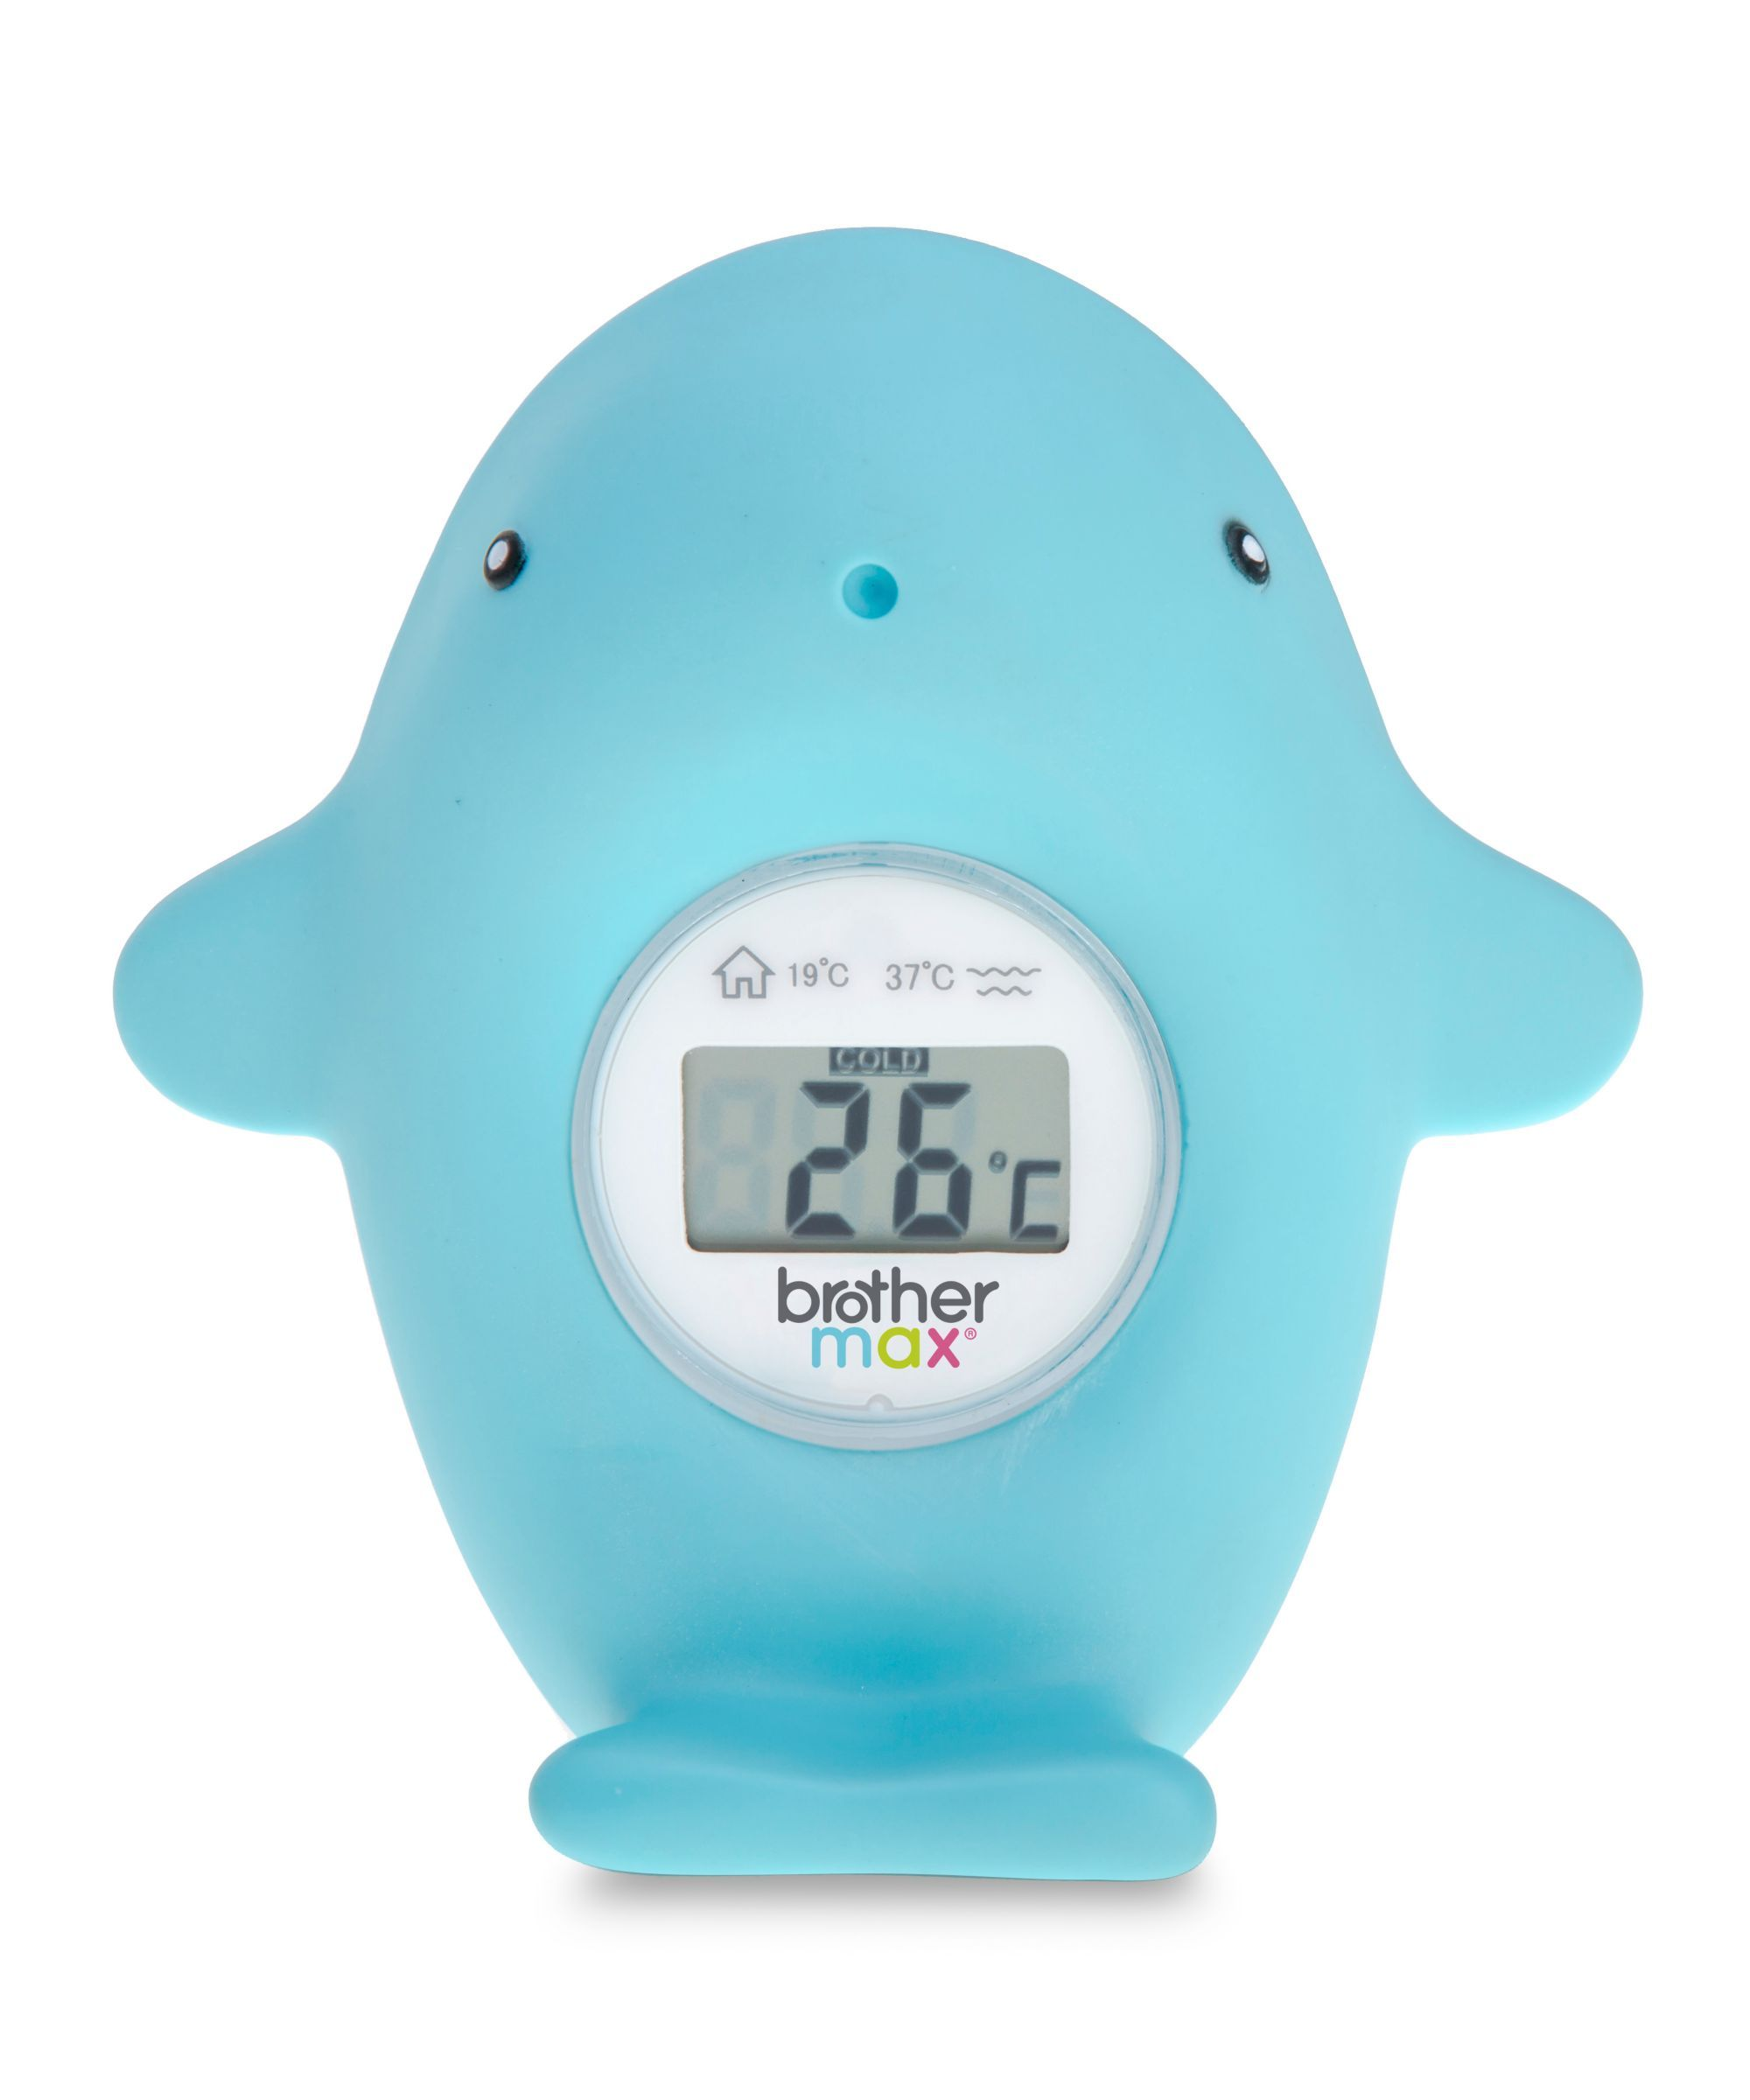 Brother Max Whale Bath and Room Thermometer | Babies